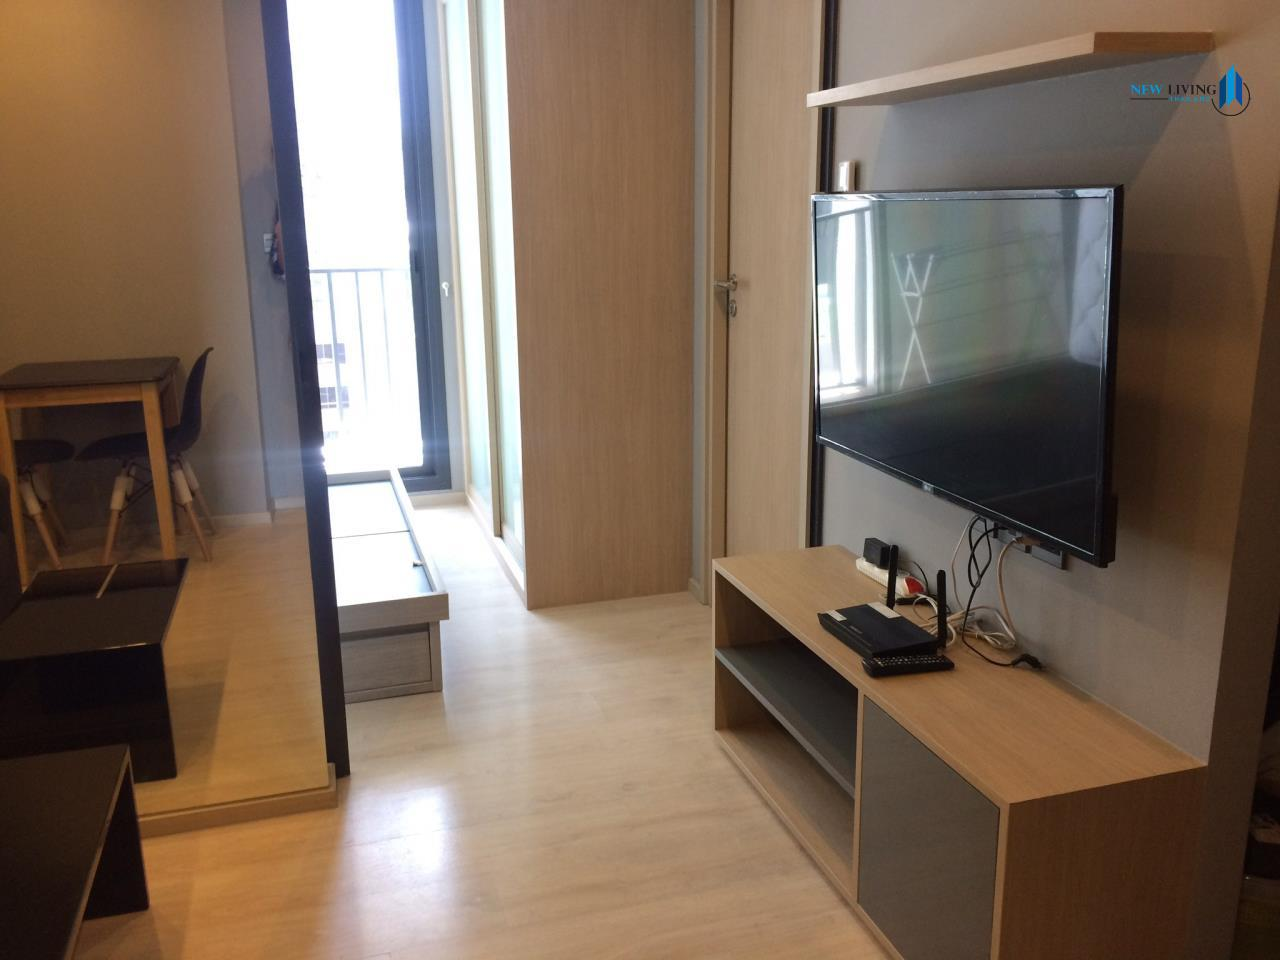 New Living Thailand Agency's **** Urgent Sale M Thonglor, 1 bedroom, beautiful unit, 29 sq.m. 4